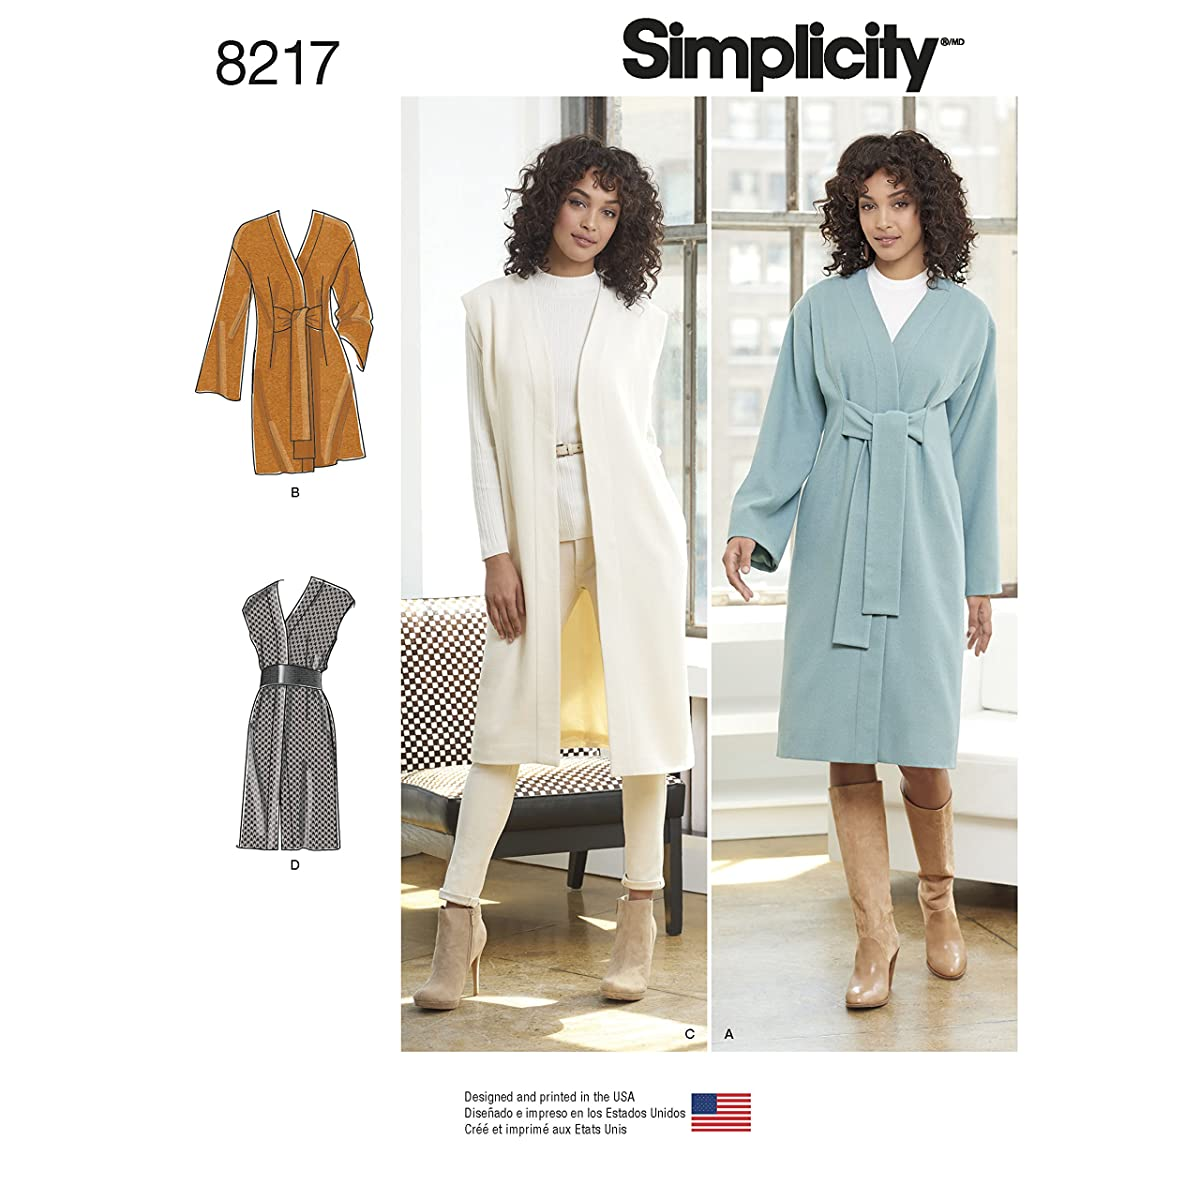 Simplicity 8217 Women's Long Coat and Vest Sewing Pattern, Sizes 8-16